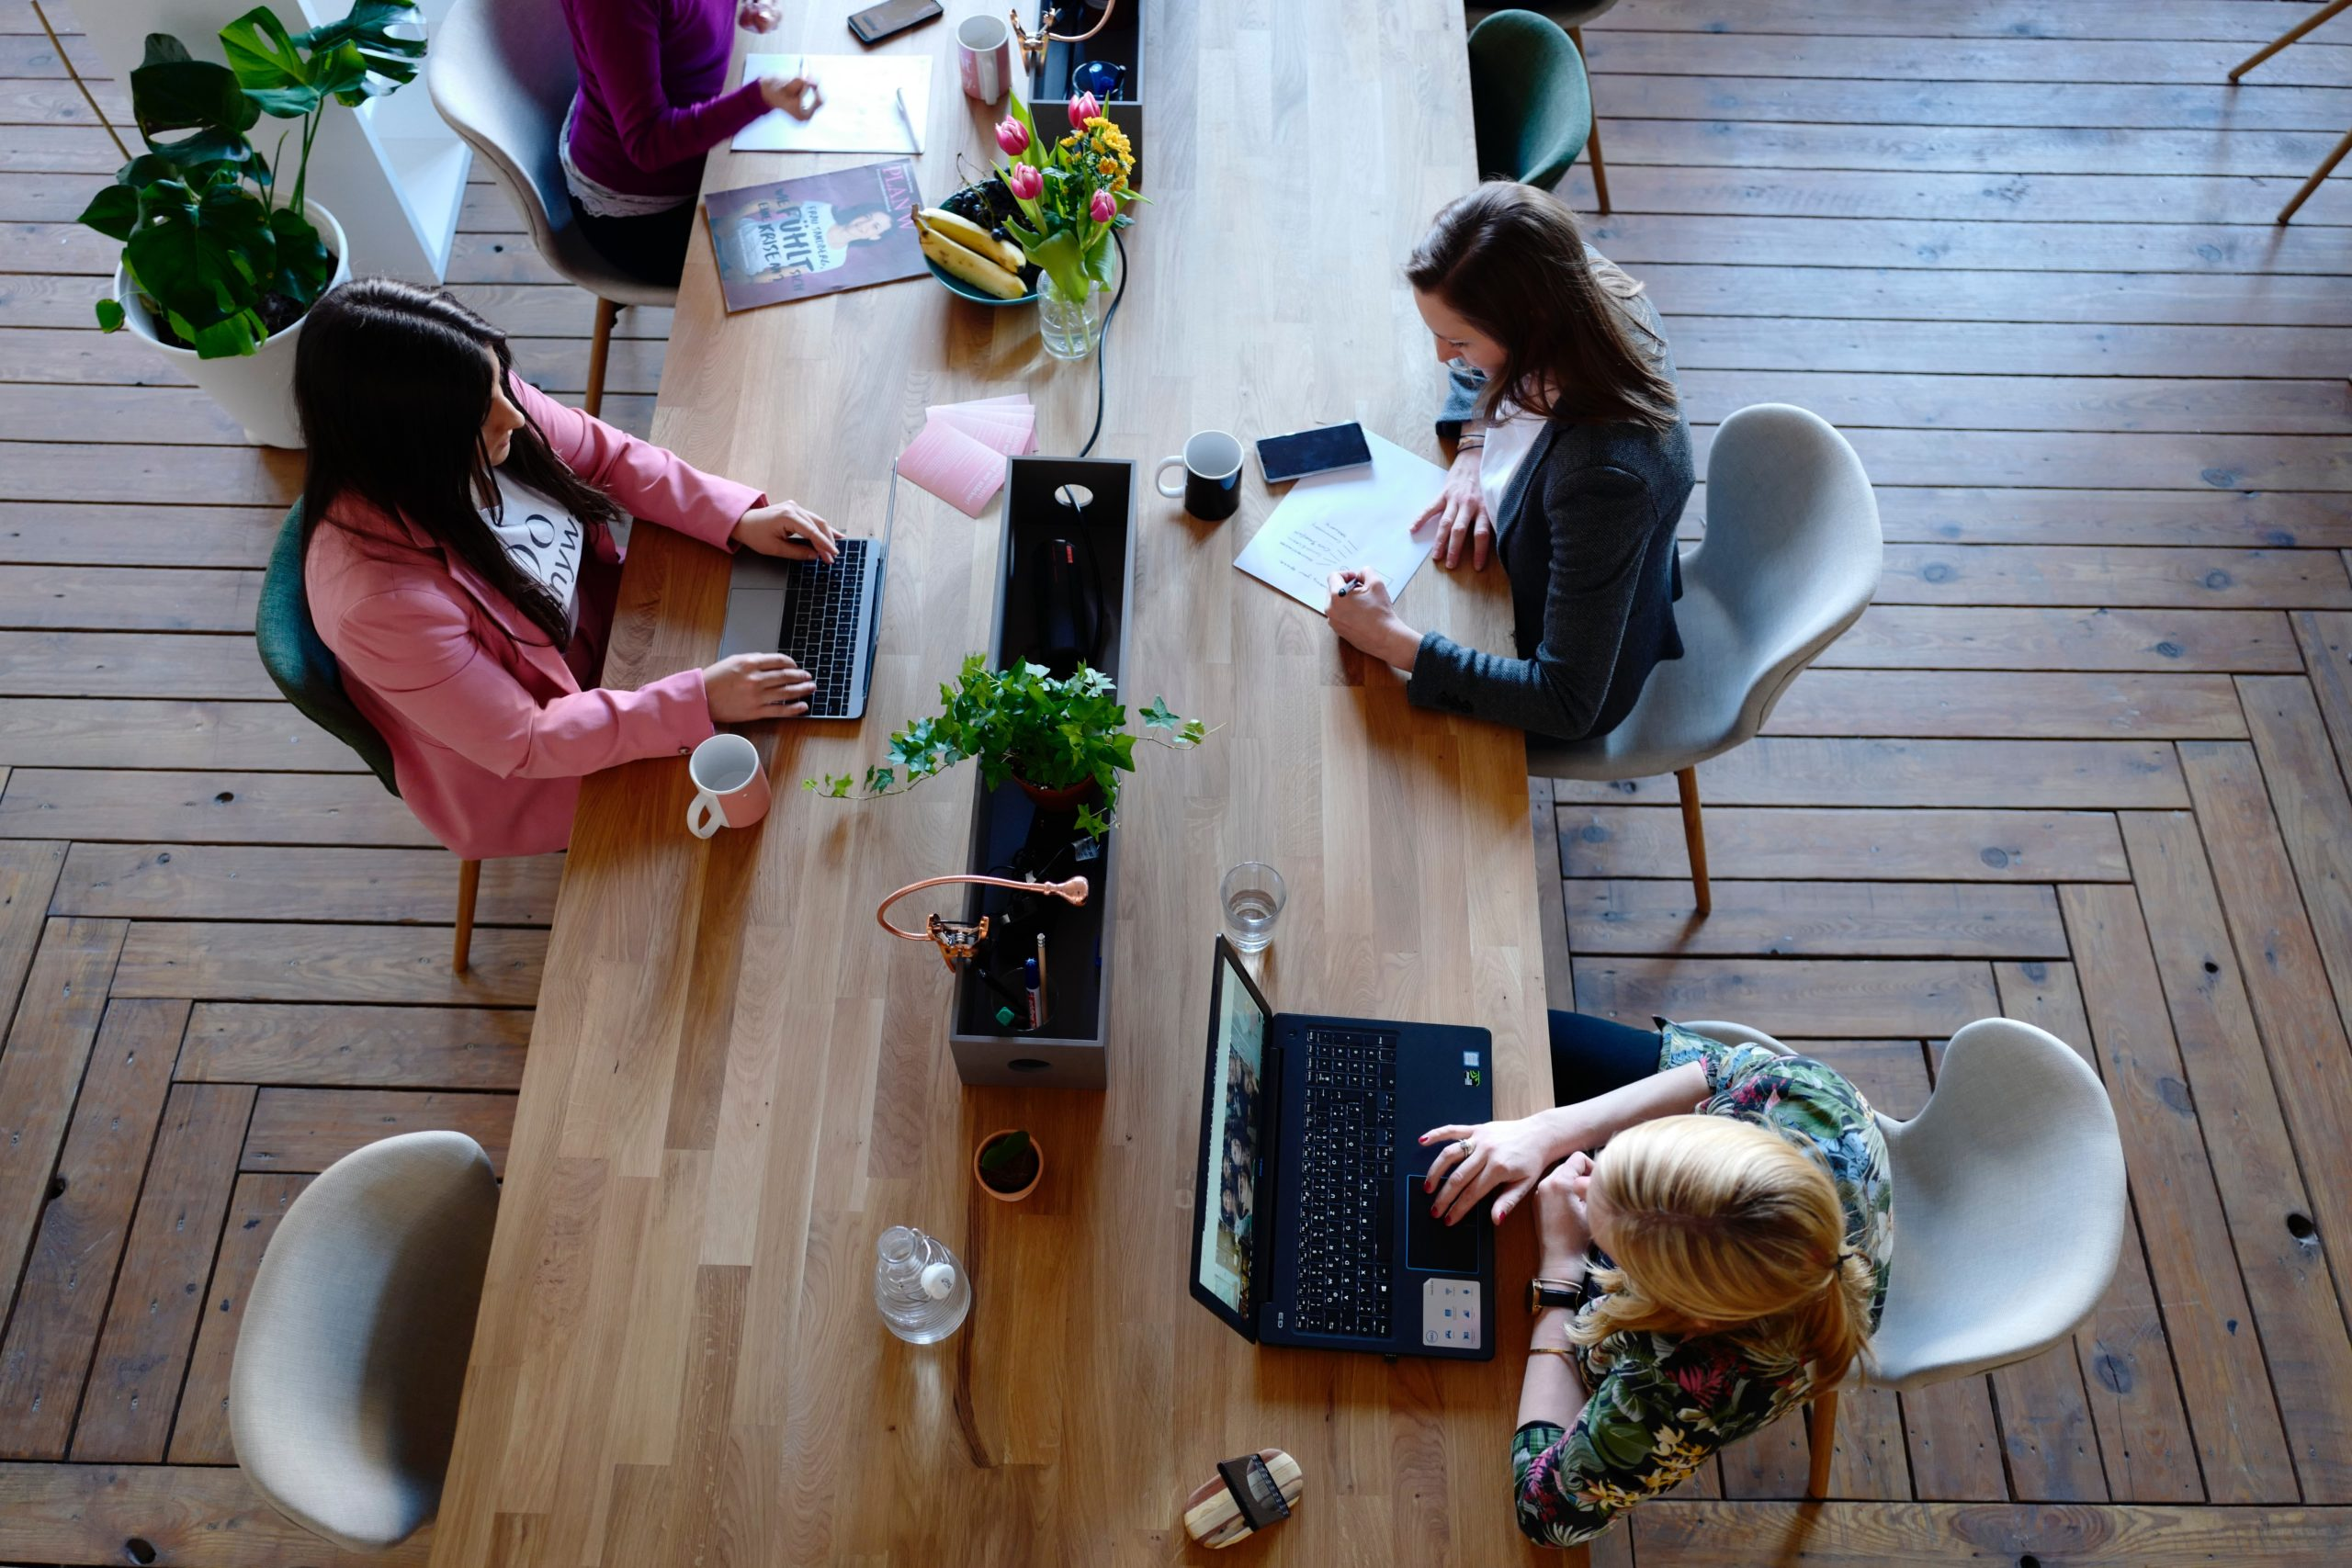 Why has coworking become so popular?